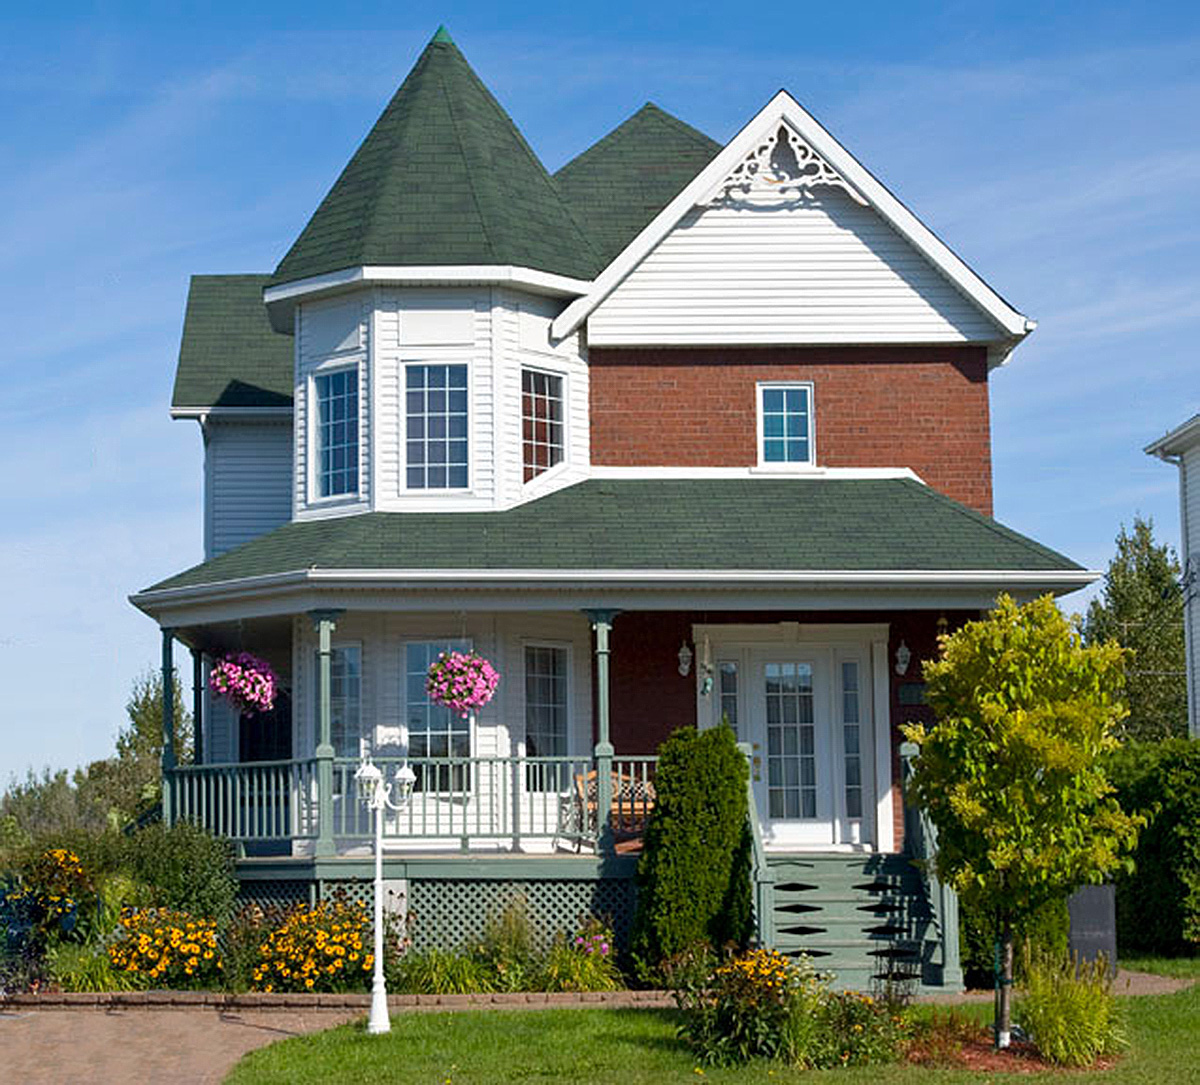 Porches Wrap Around Porches And Victorian On Pinterest: Victorian With Wrap-Around Porch - 90217PD